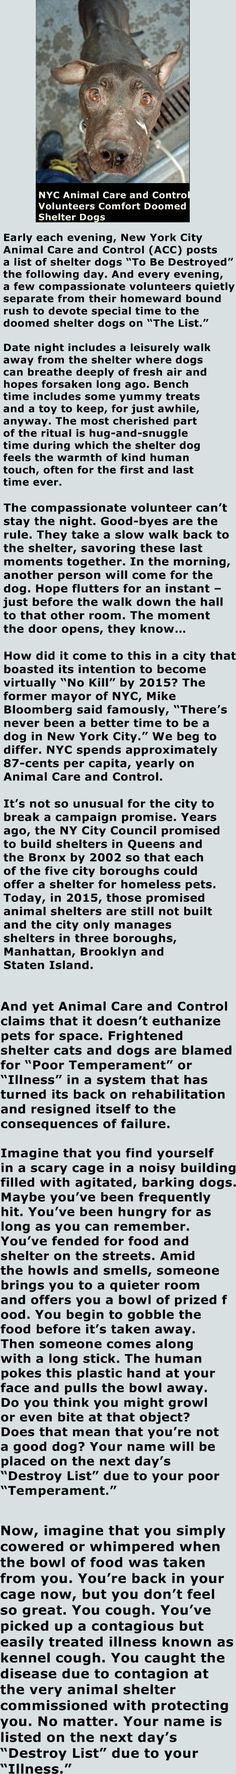 THE TRUTH ABOUT NYCACC SHELTERS http://www.thepetmatchmaker.com/nyc-animal-care-and-control-comfort-doomed-shelter-dogs/